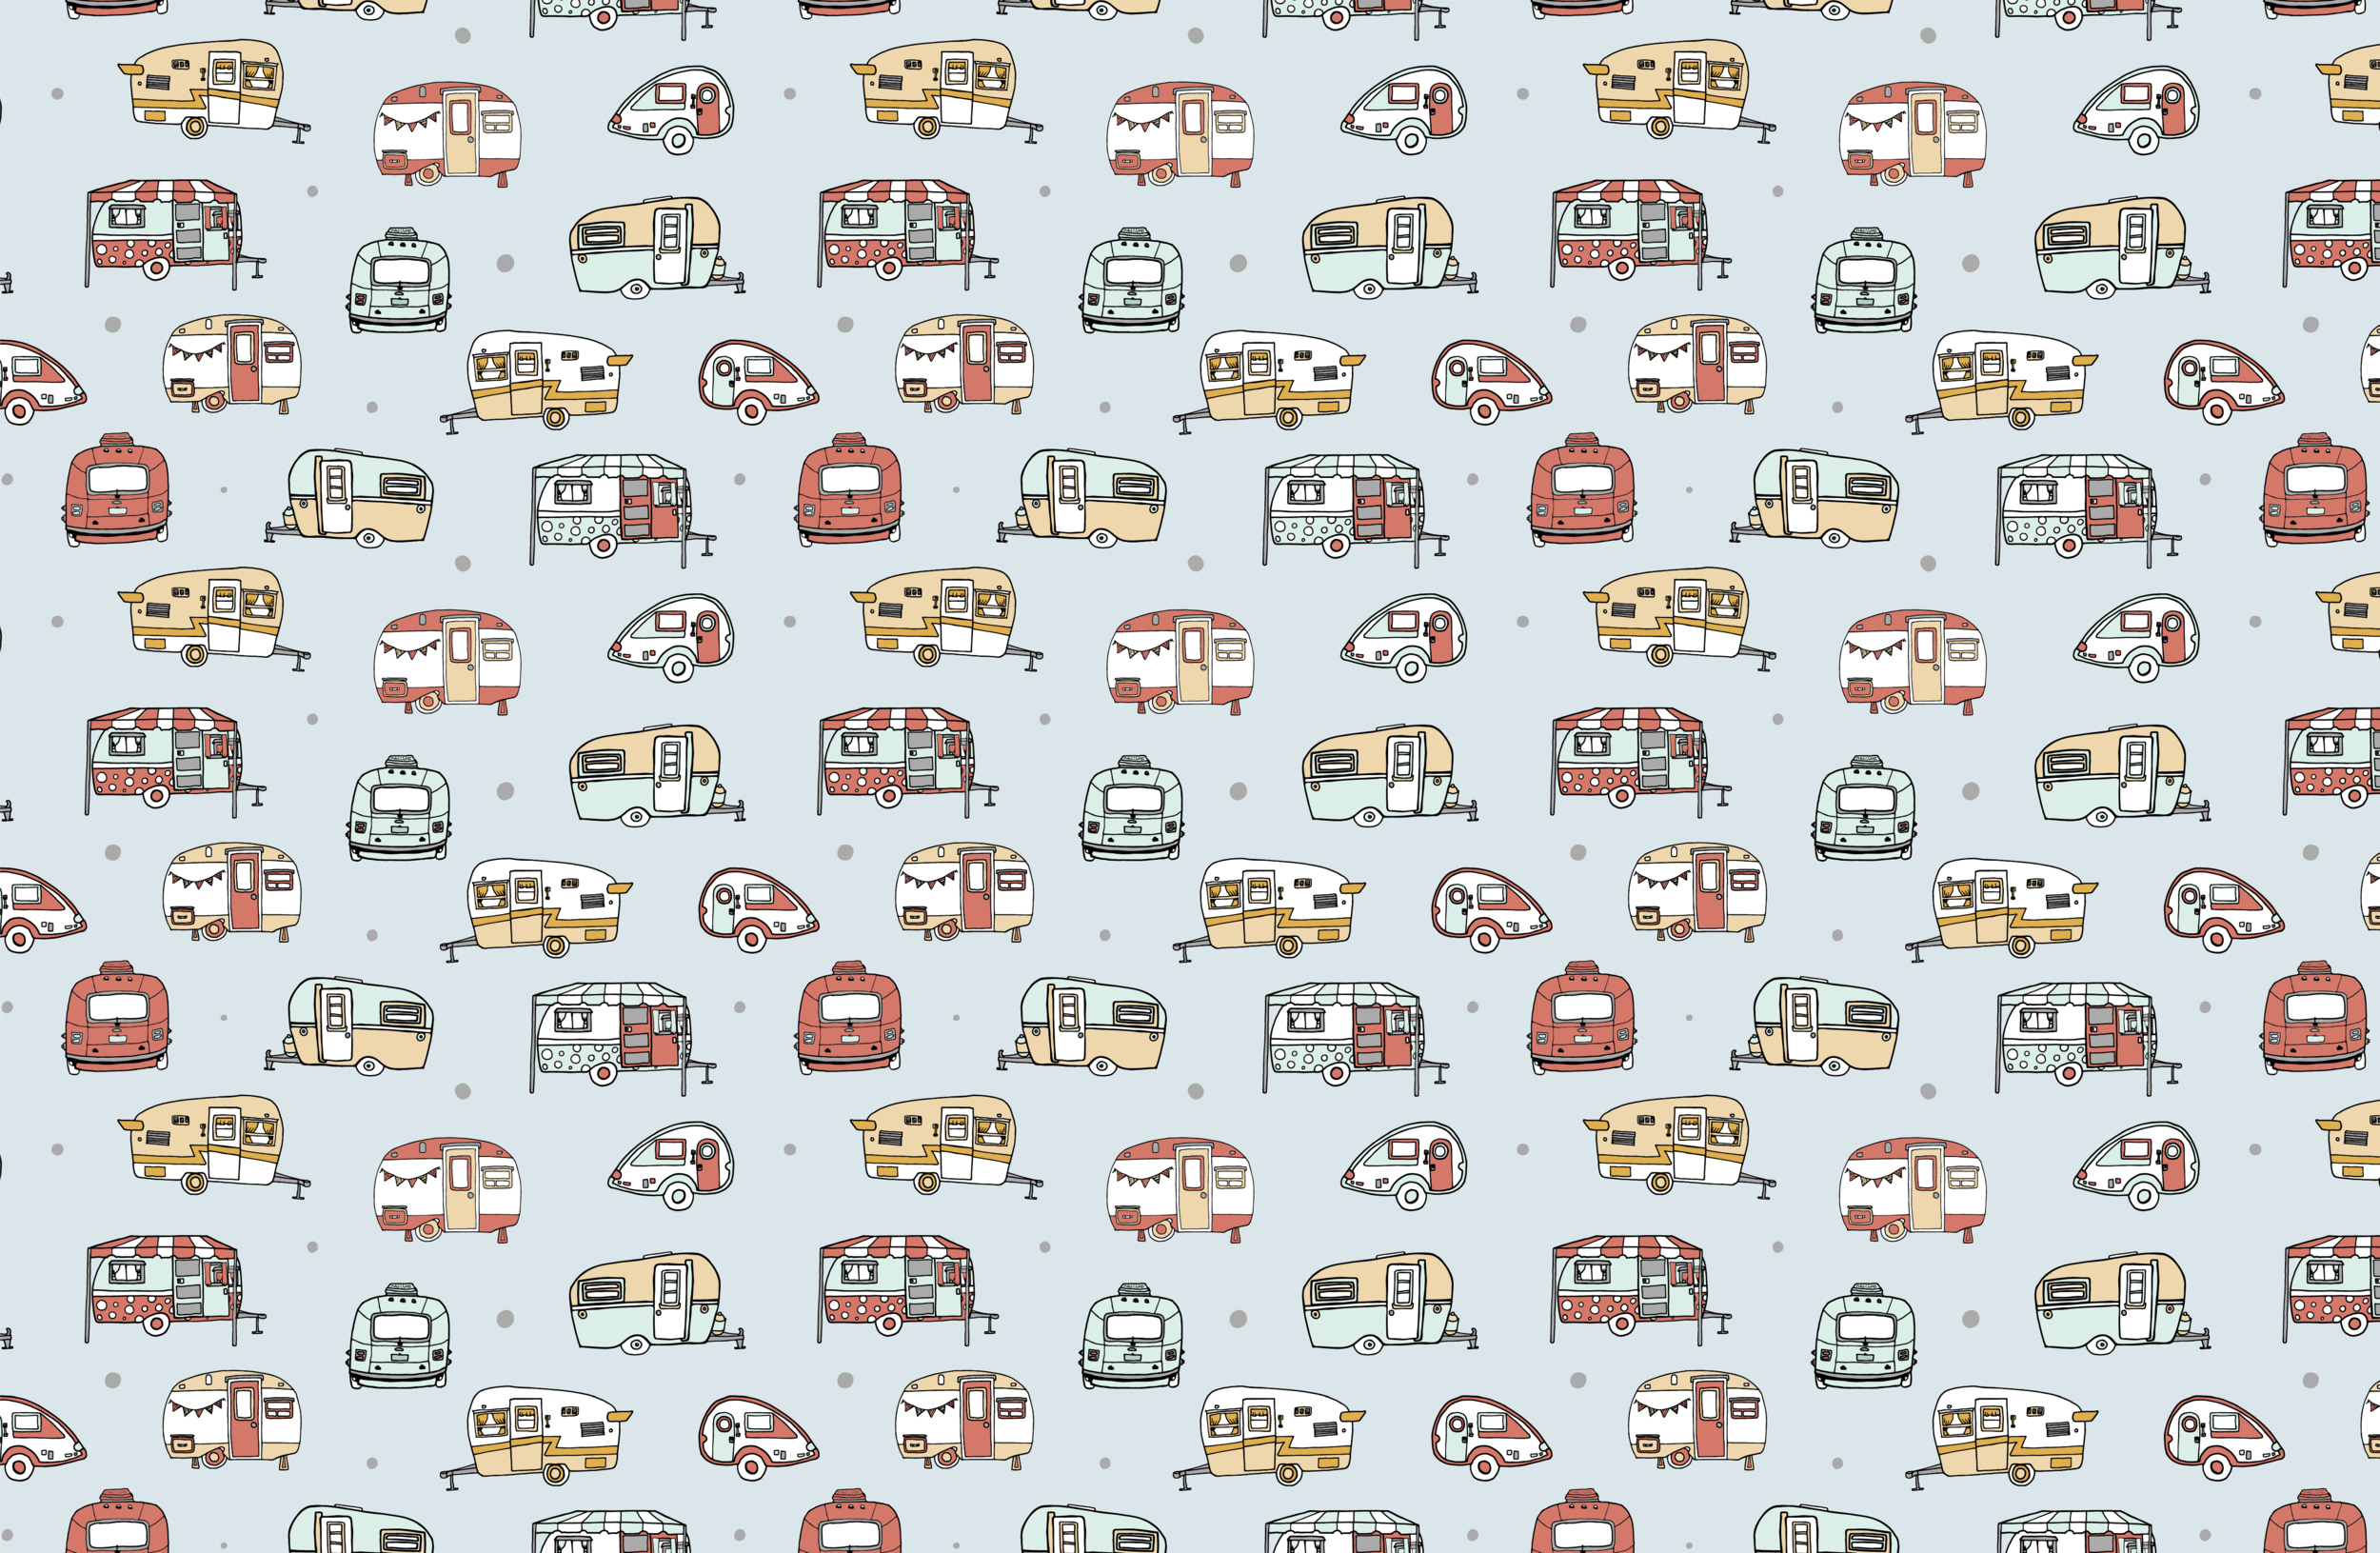 Patterns-02.png